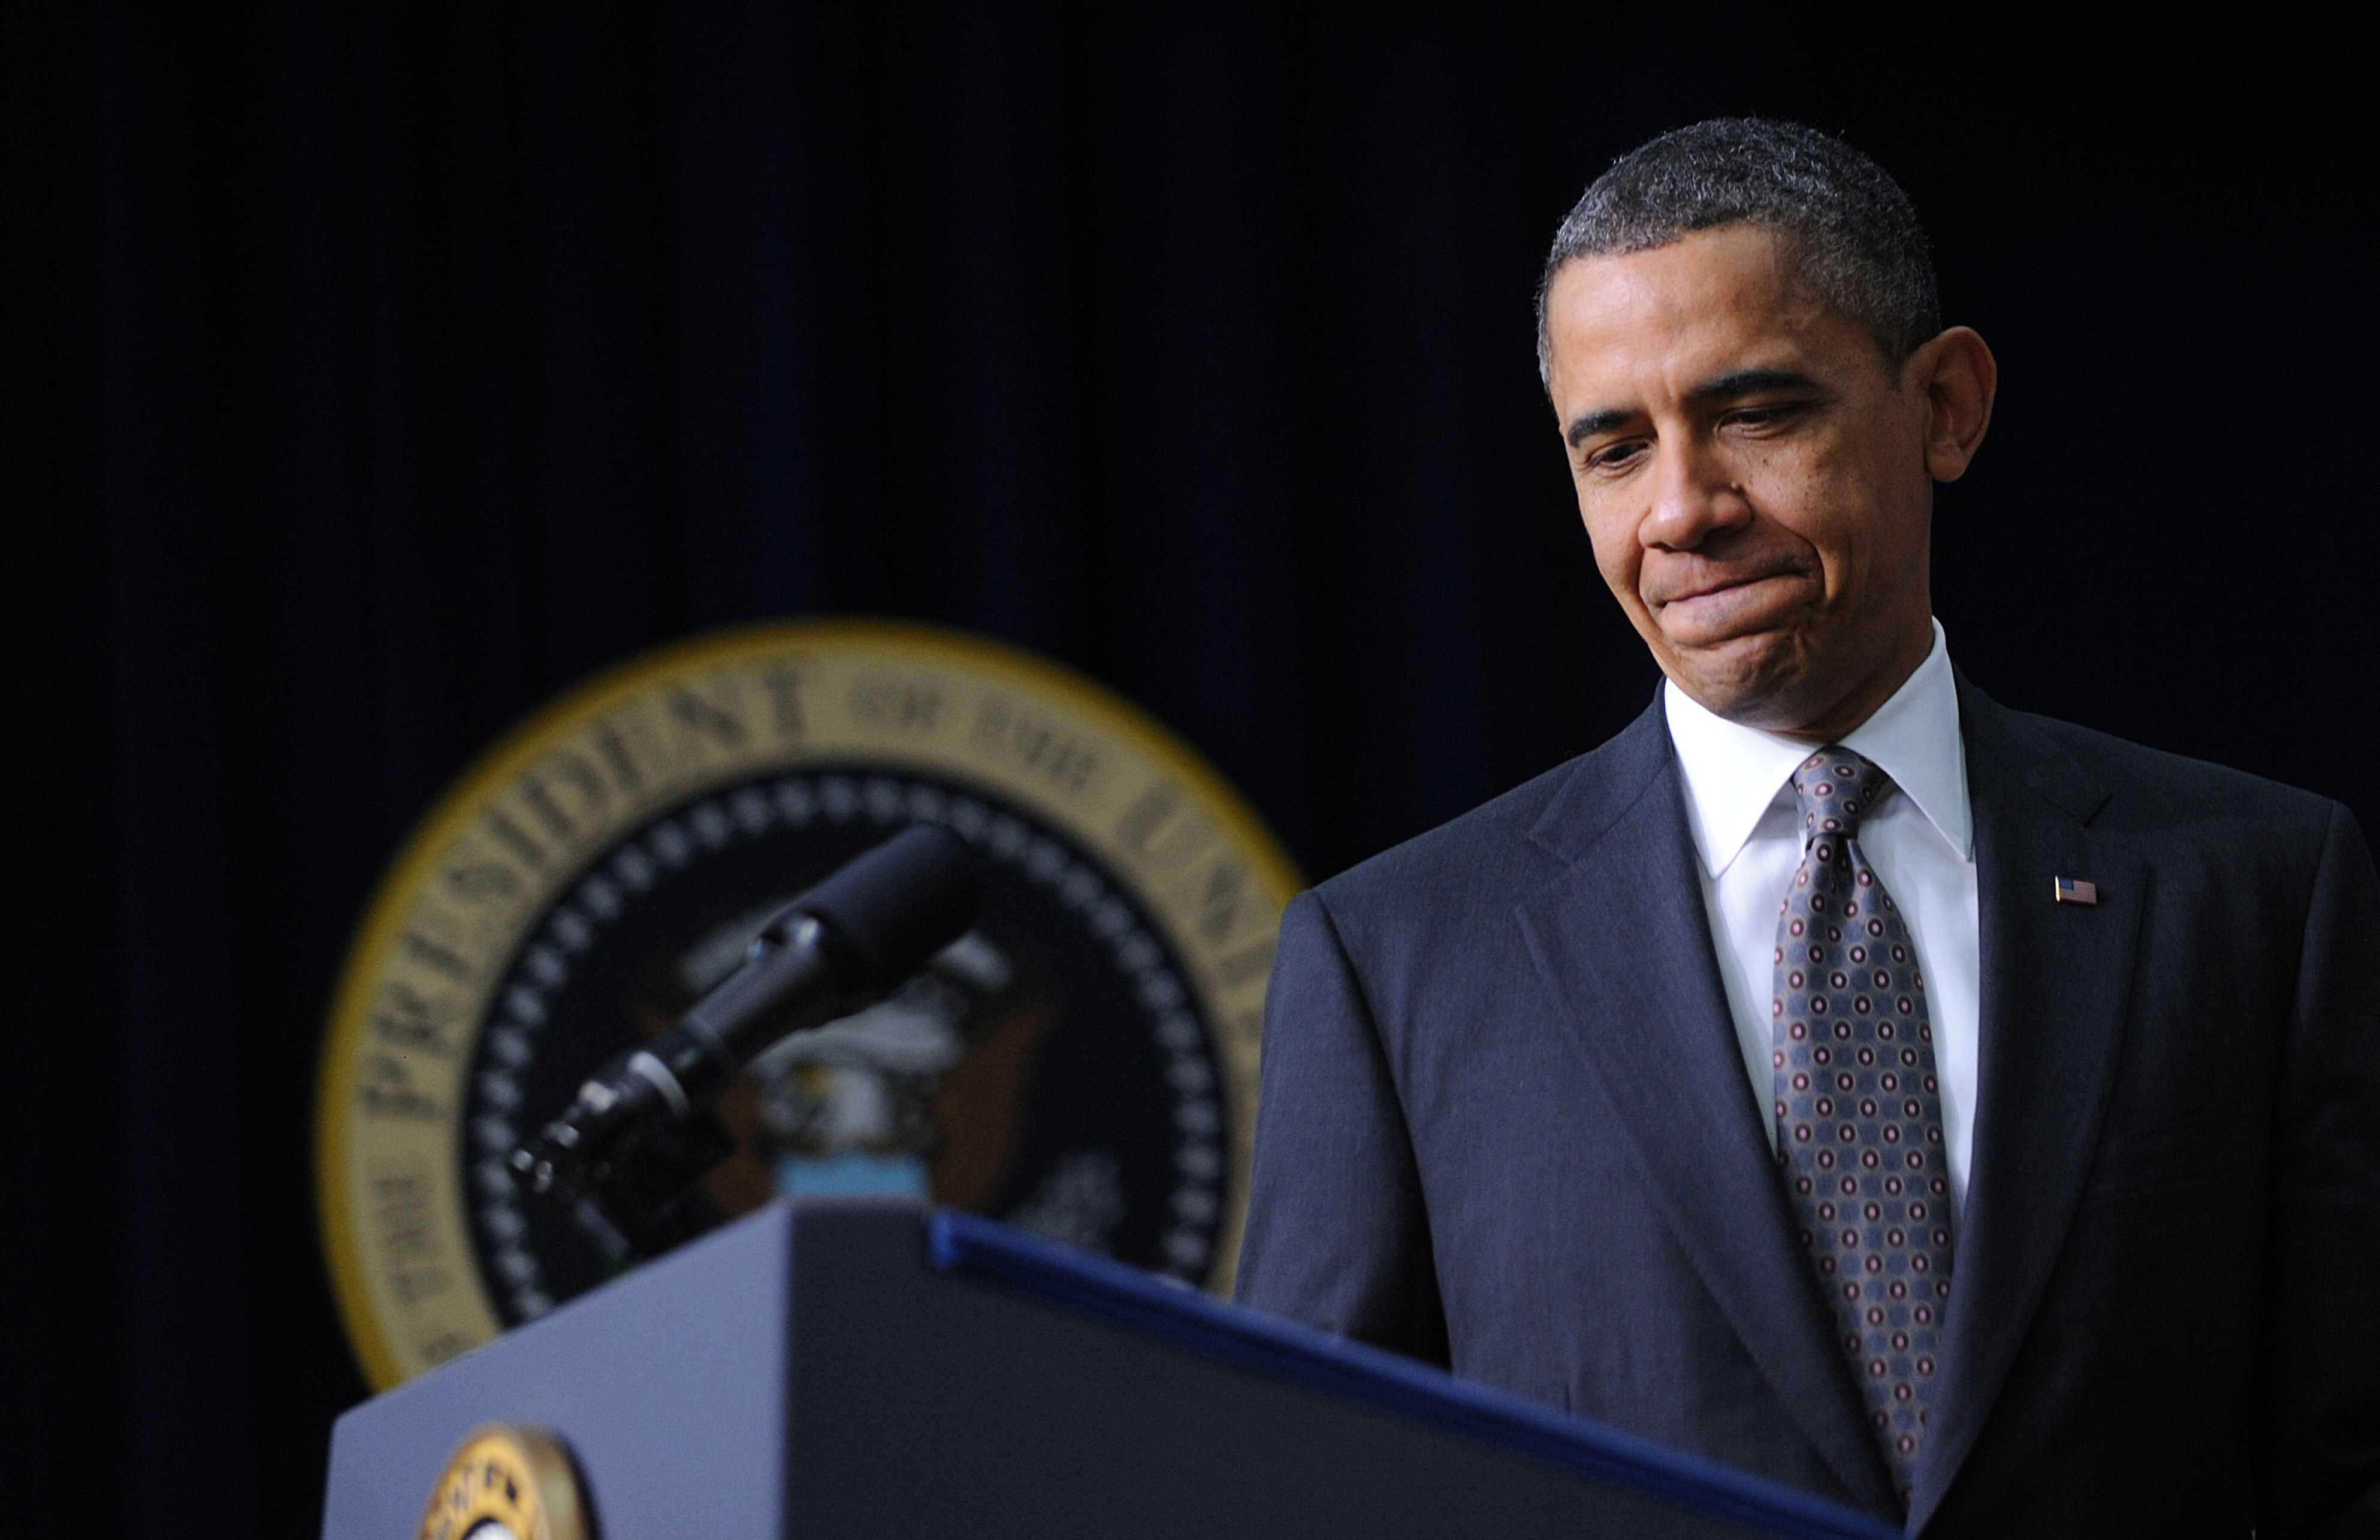 Obama speaks at White House about bipartisan compromise